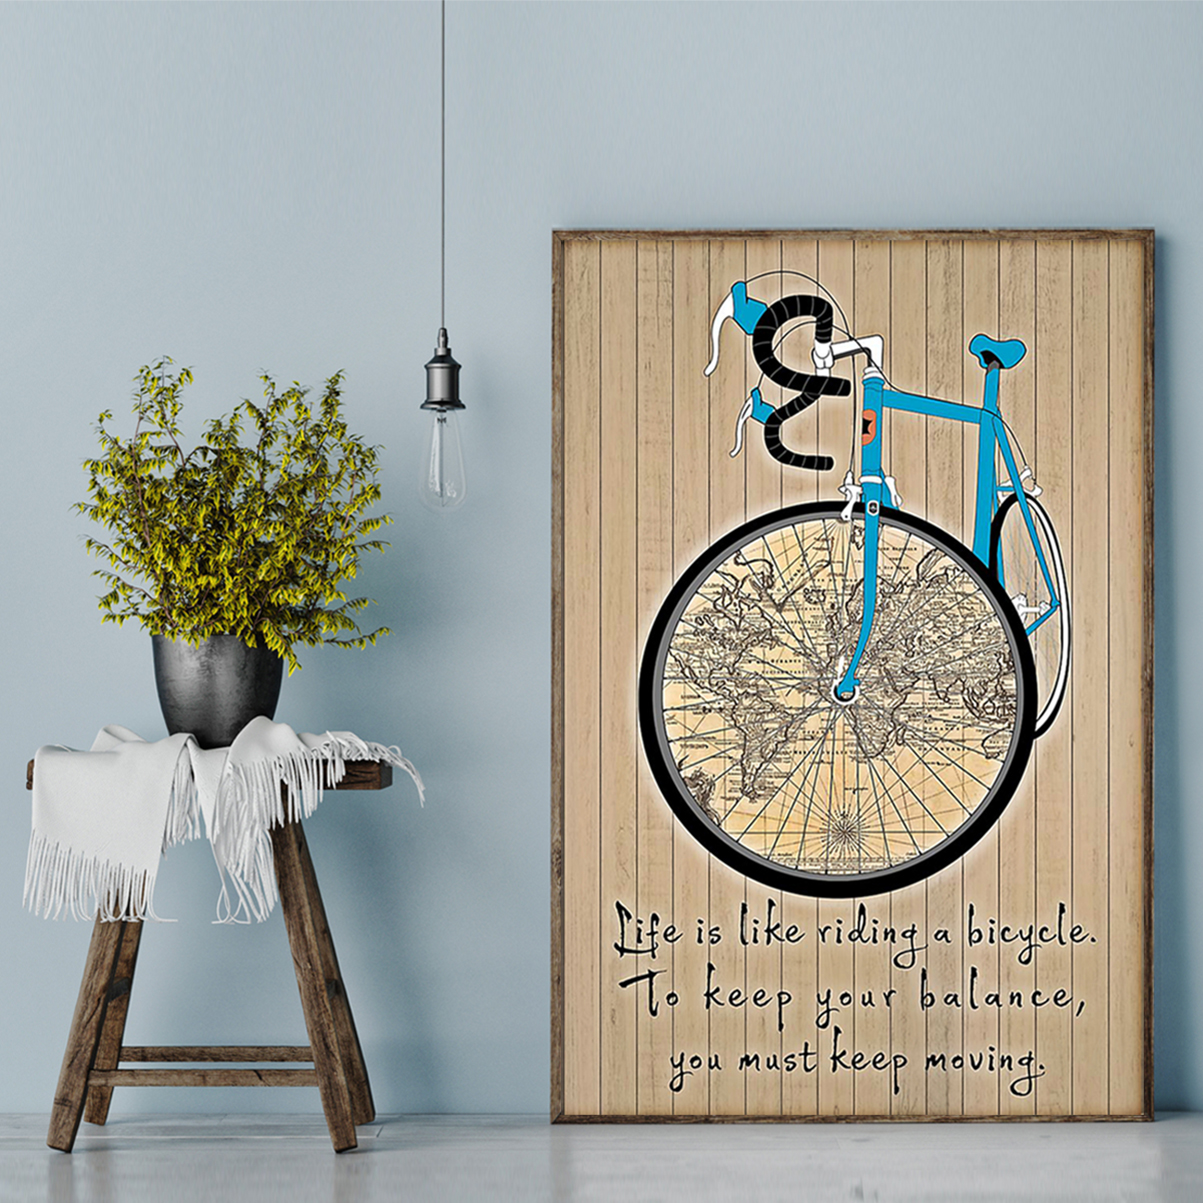 Life is like is riding a bicycle map poster A2